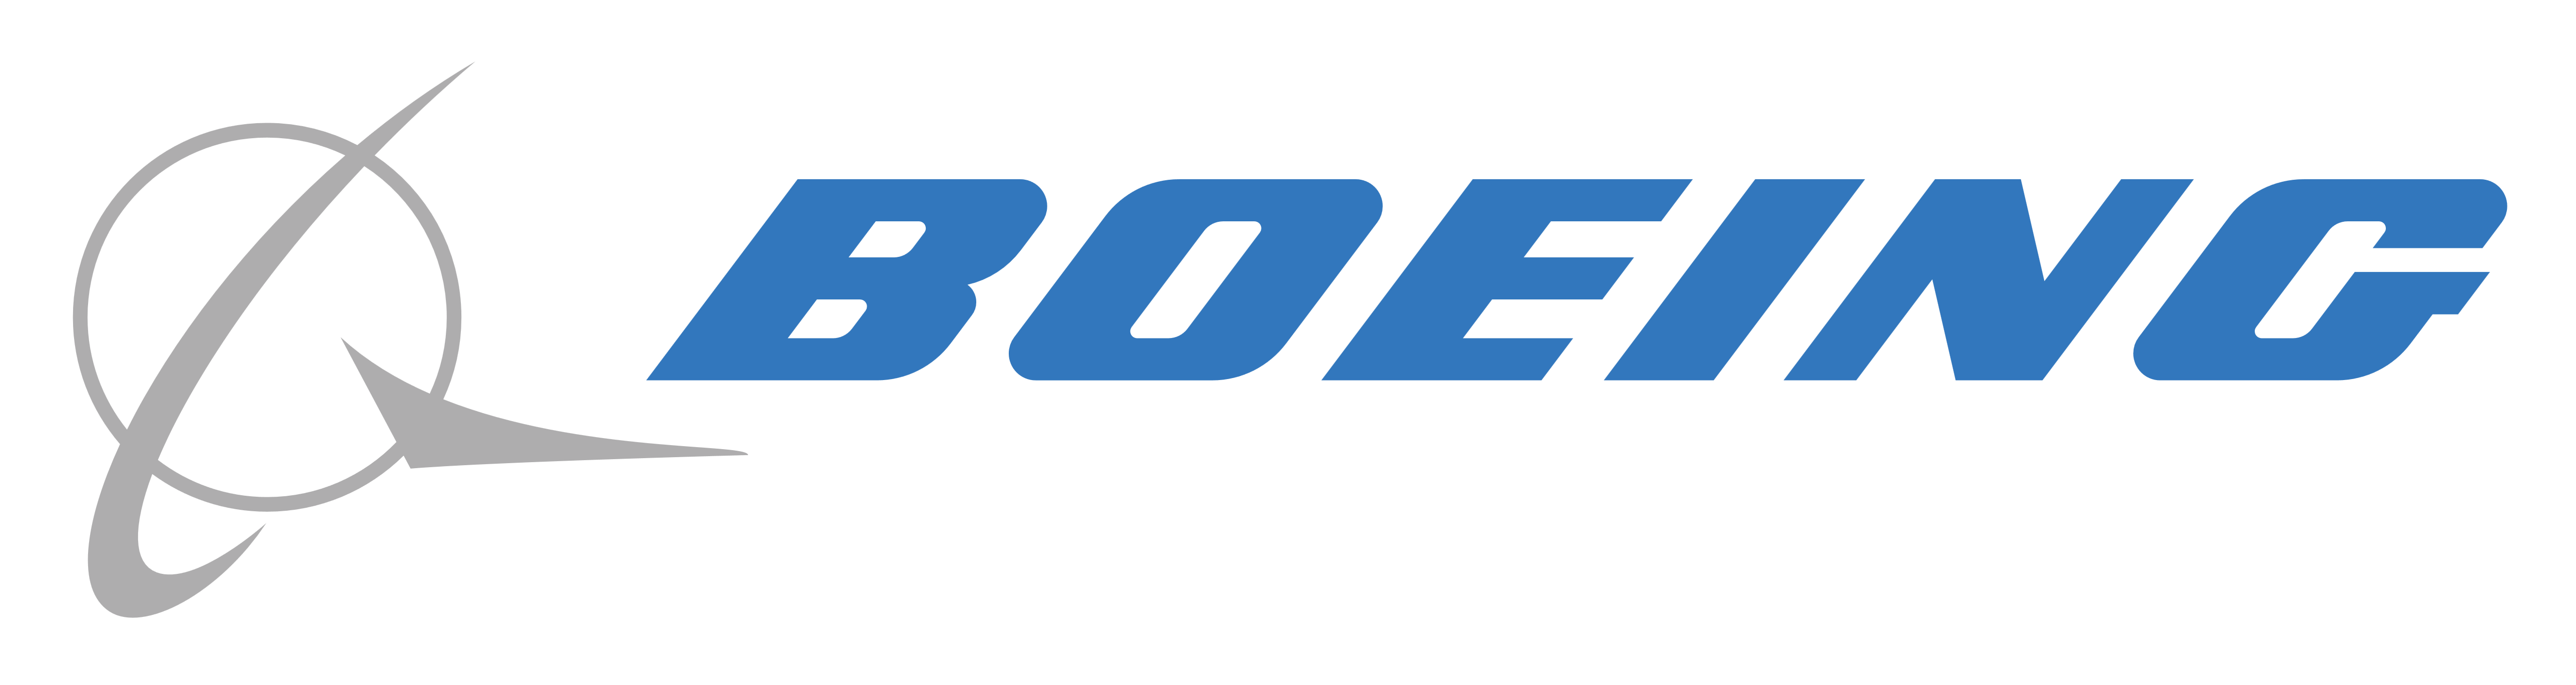 Boeing Logo   Download Boeing Logo Png - Boeing Vector, Transparent background PNG HD thumbnail